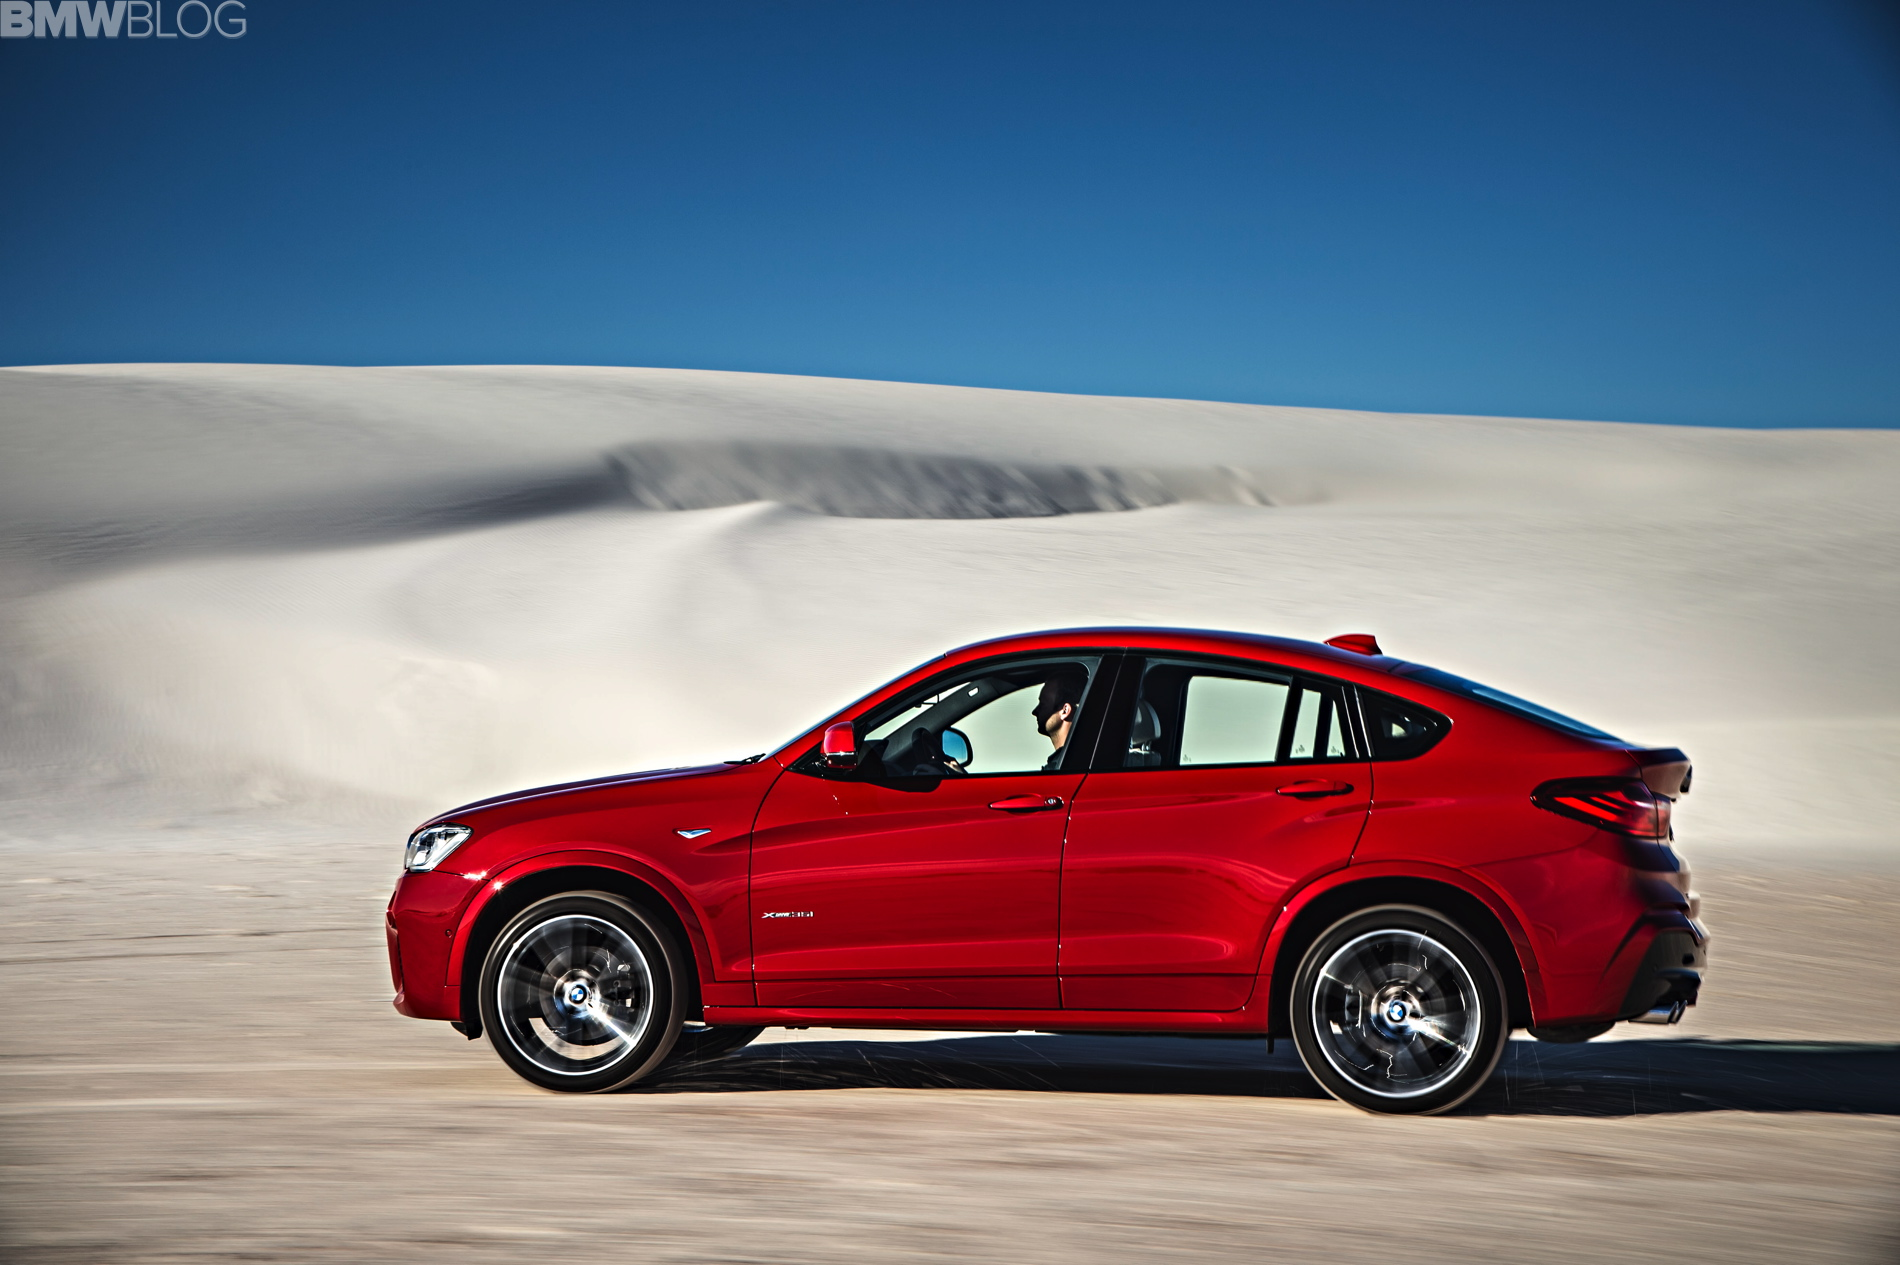 New Bmw X4 World Premiere